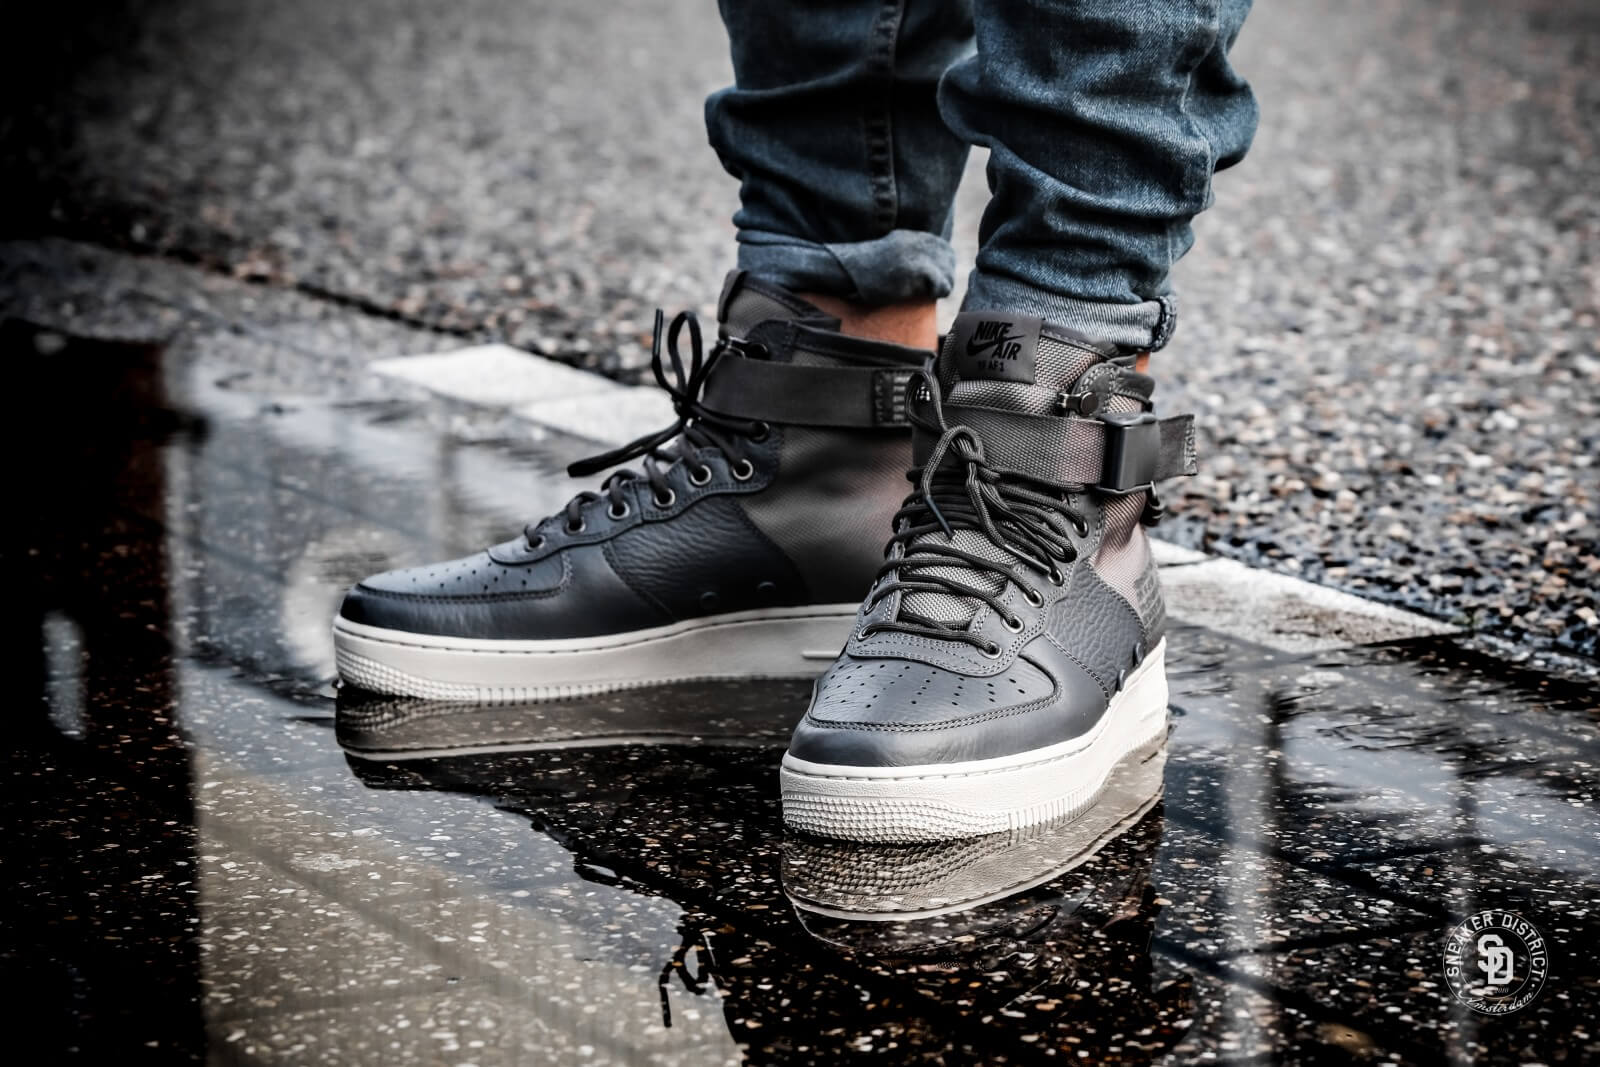 Nike SF Air Force 1 Mid Dark GreyLight Bone 917753 004